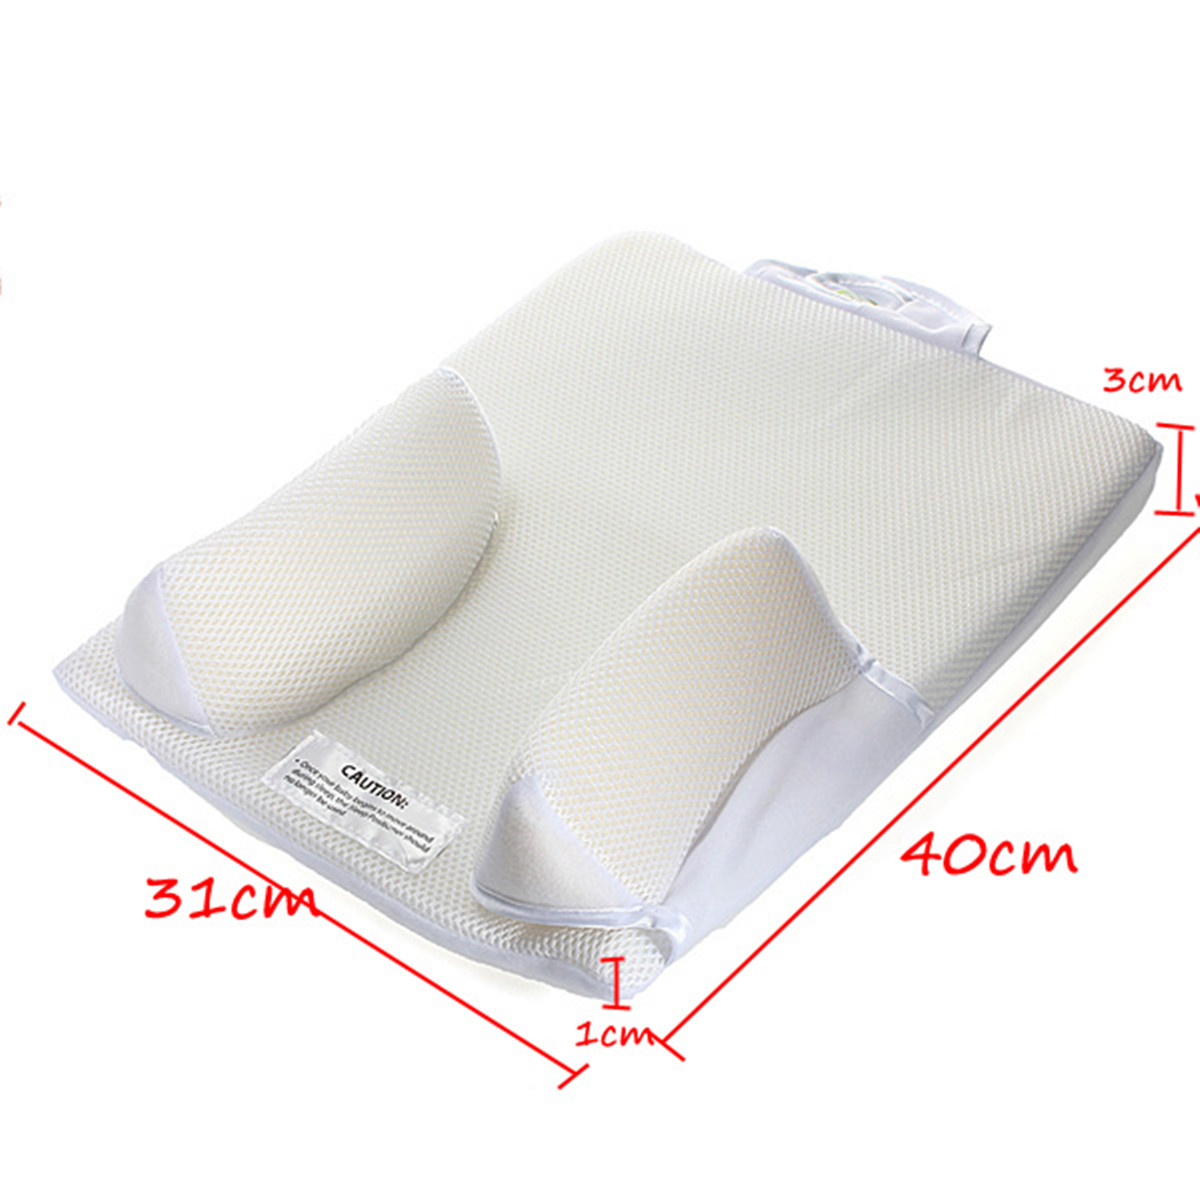 Baby Care Infant Anti Roll Pillow With Ultimate Fixed Vent And Sleep Positioner To Prevent Flat Head 2